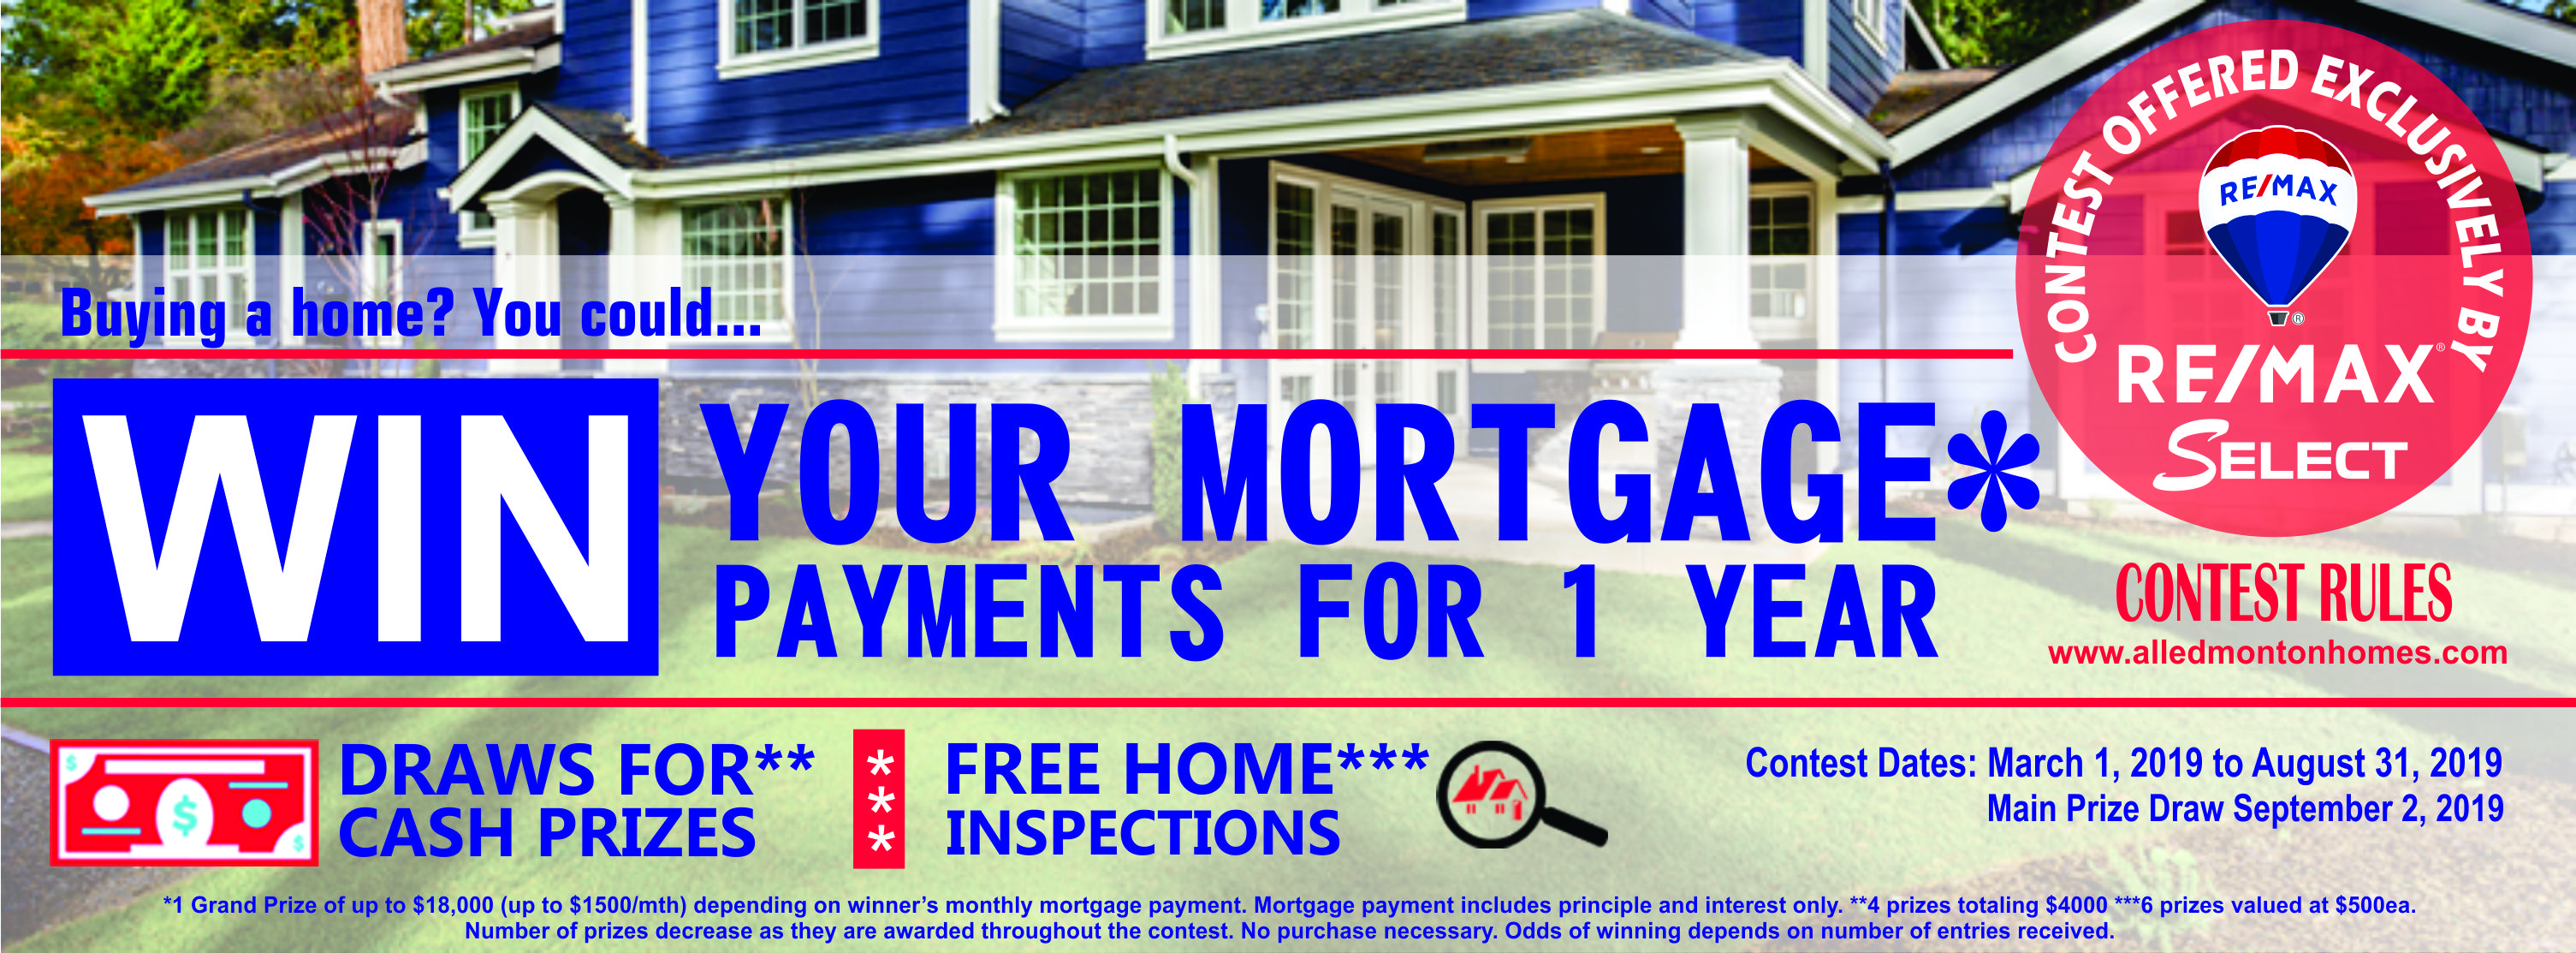 Win your mortgage payments for a year!: Melody Kilbank